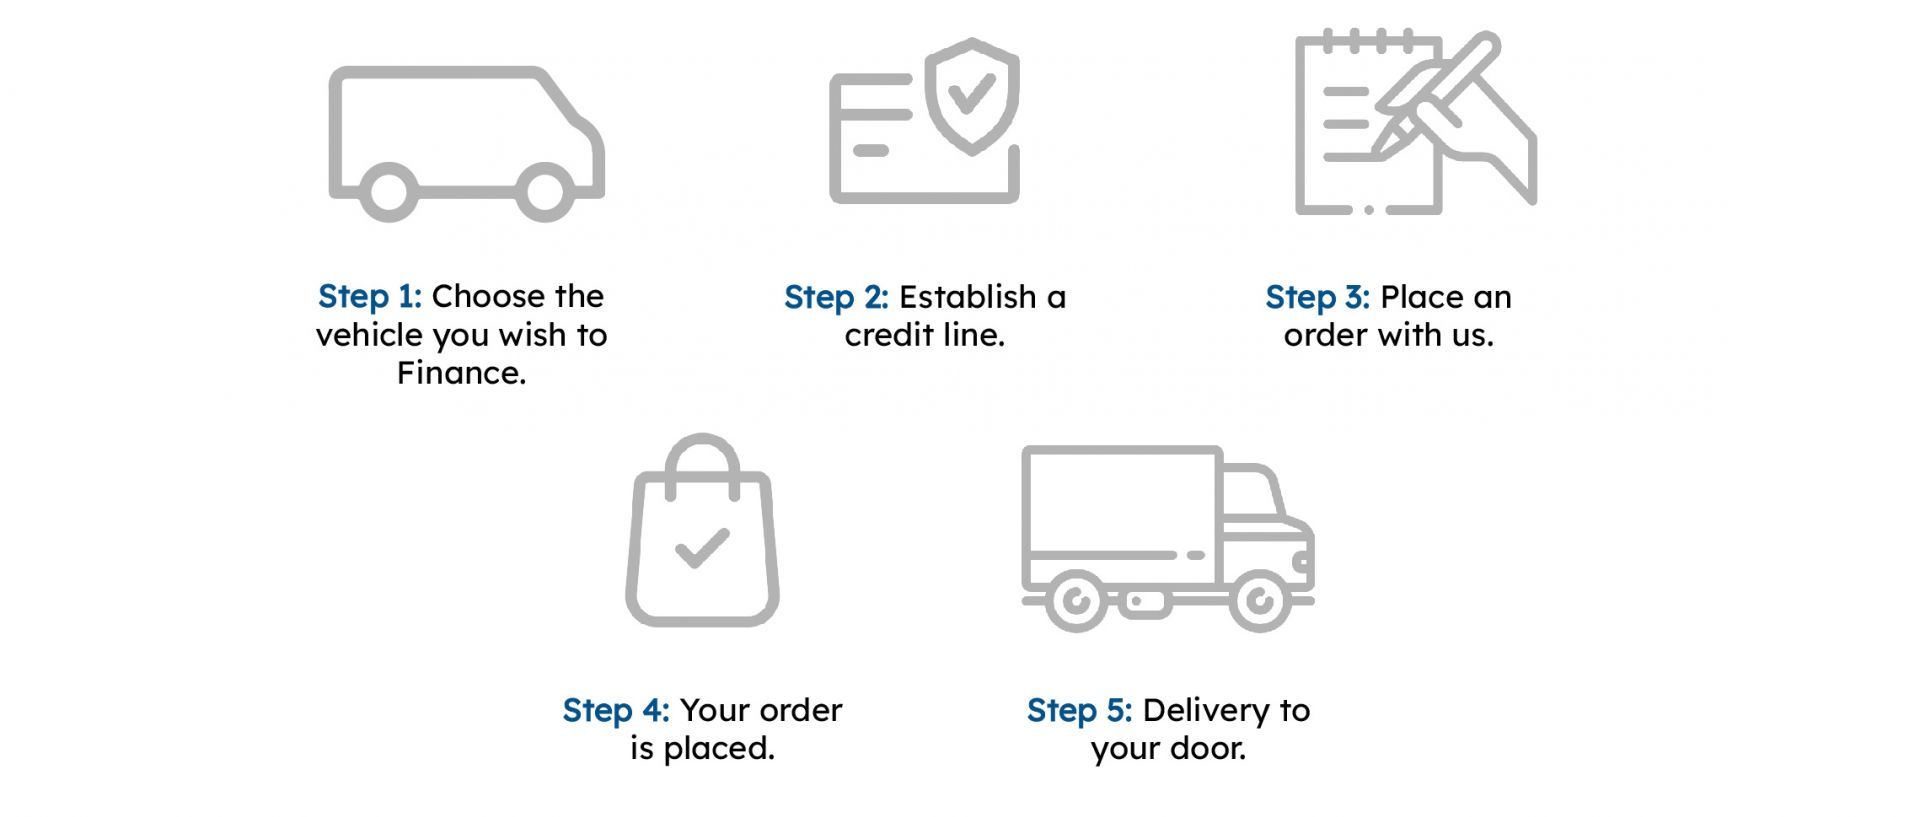 order process infographic